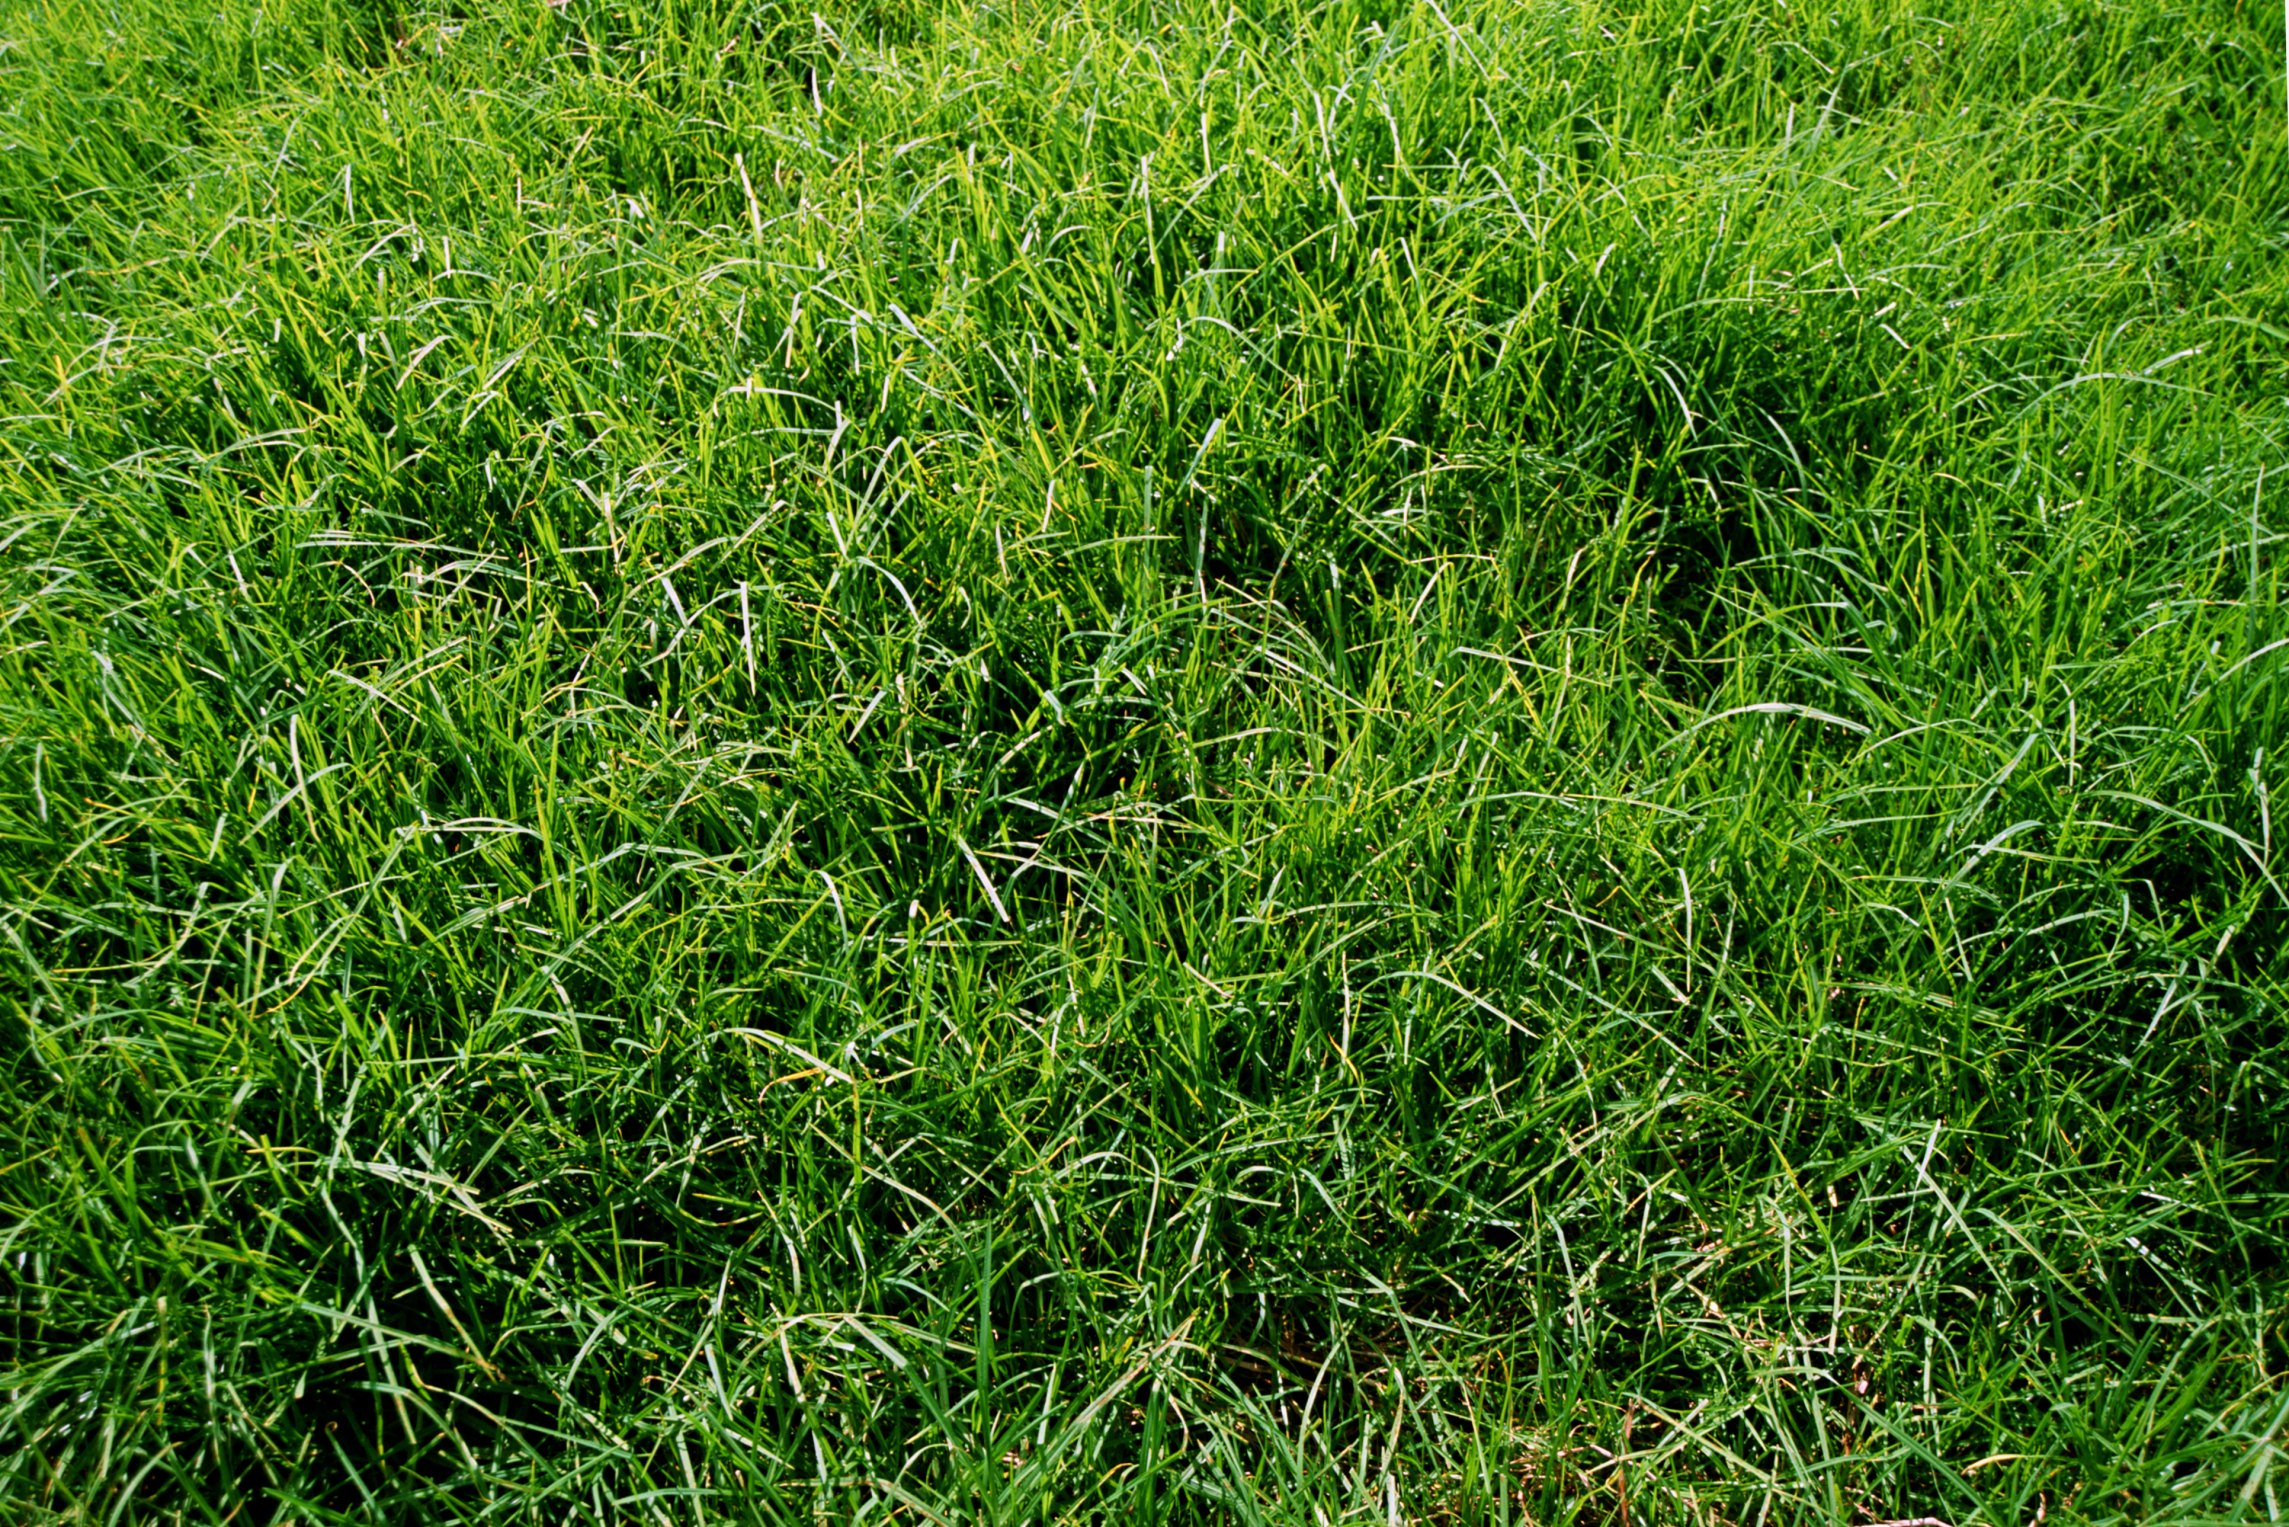 Pretentious When To Plant Centipede Grass Ehow Centipede Grass Seed Sale Near Me Centipede Grass Seed Head houzz-02 Centipede Grass Seed